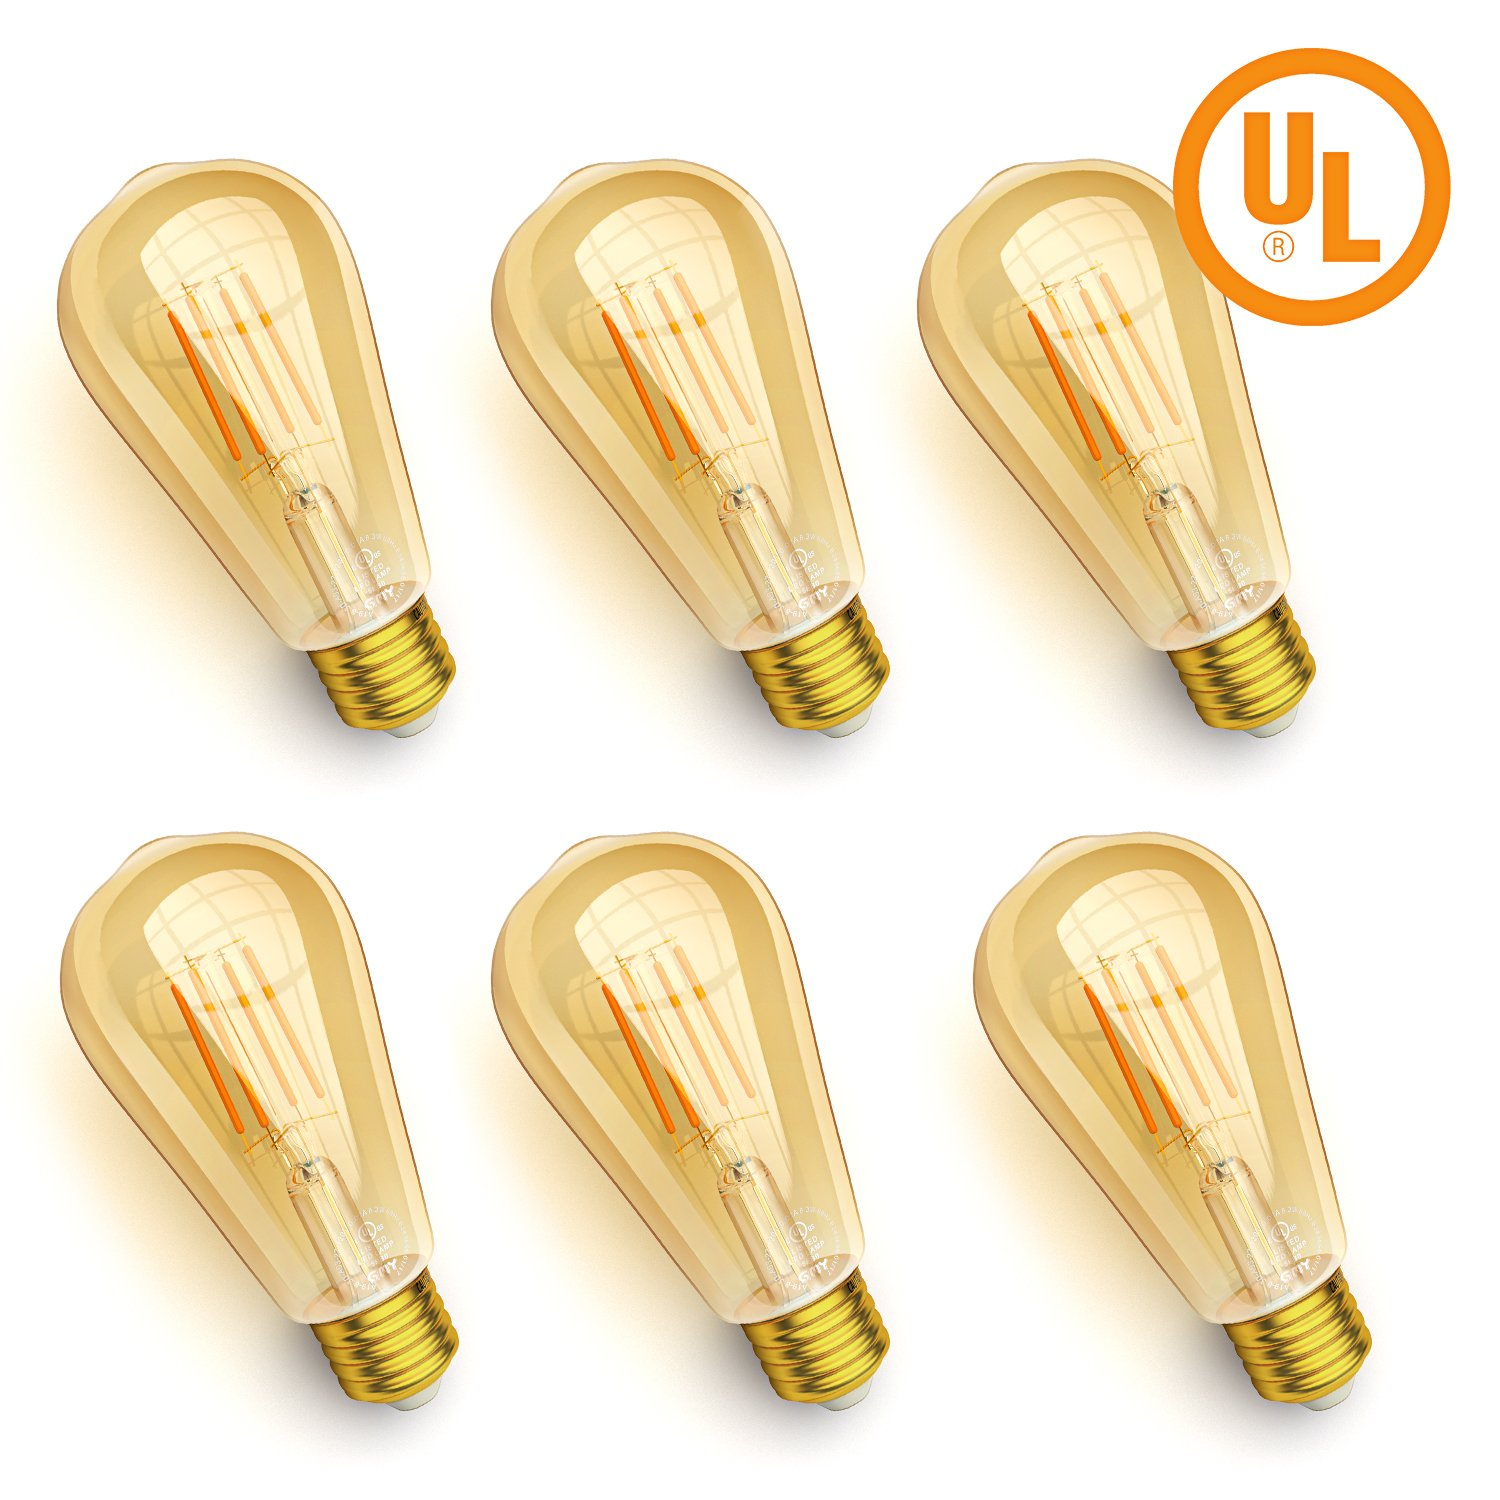 Dimmable Vintage Edison LED Light Bulb Energy Saving, GMY UL Listed Filament Bulbs, 2200K Warm White, Ideal for Decorate Home, Amber Gold Glass and E26 Base (4.5W-Pack of 6)